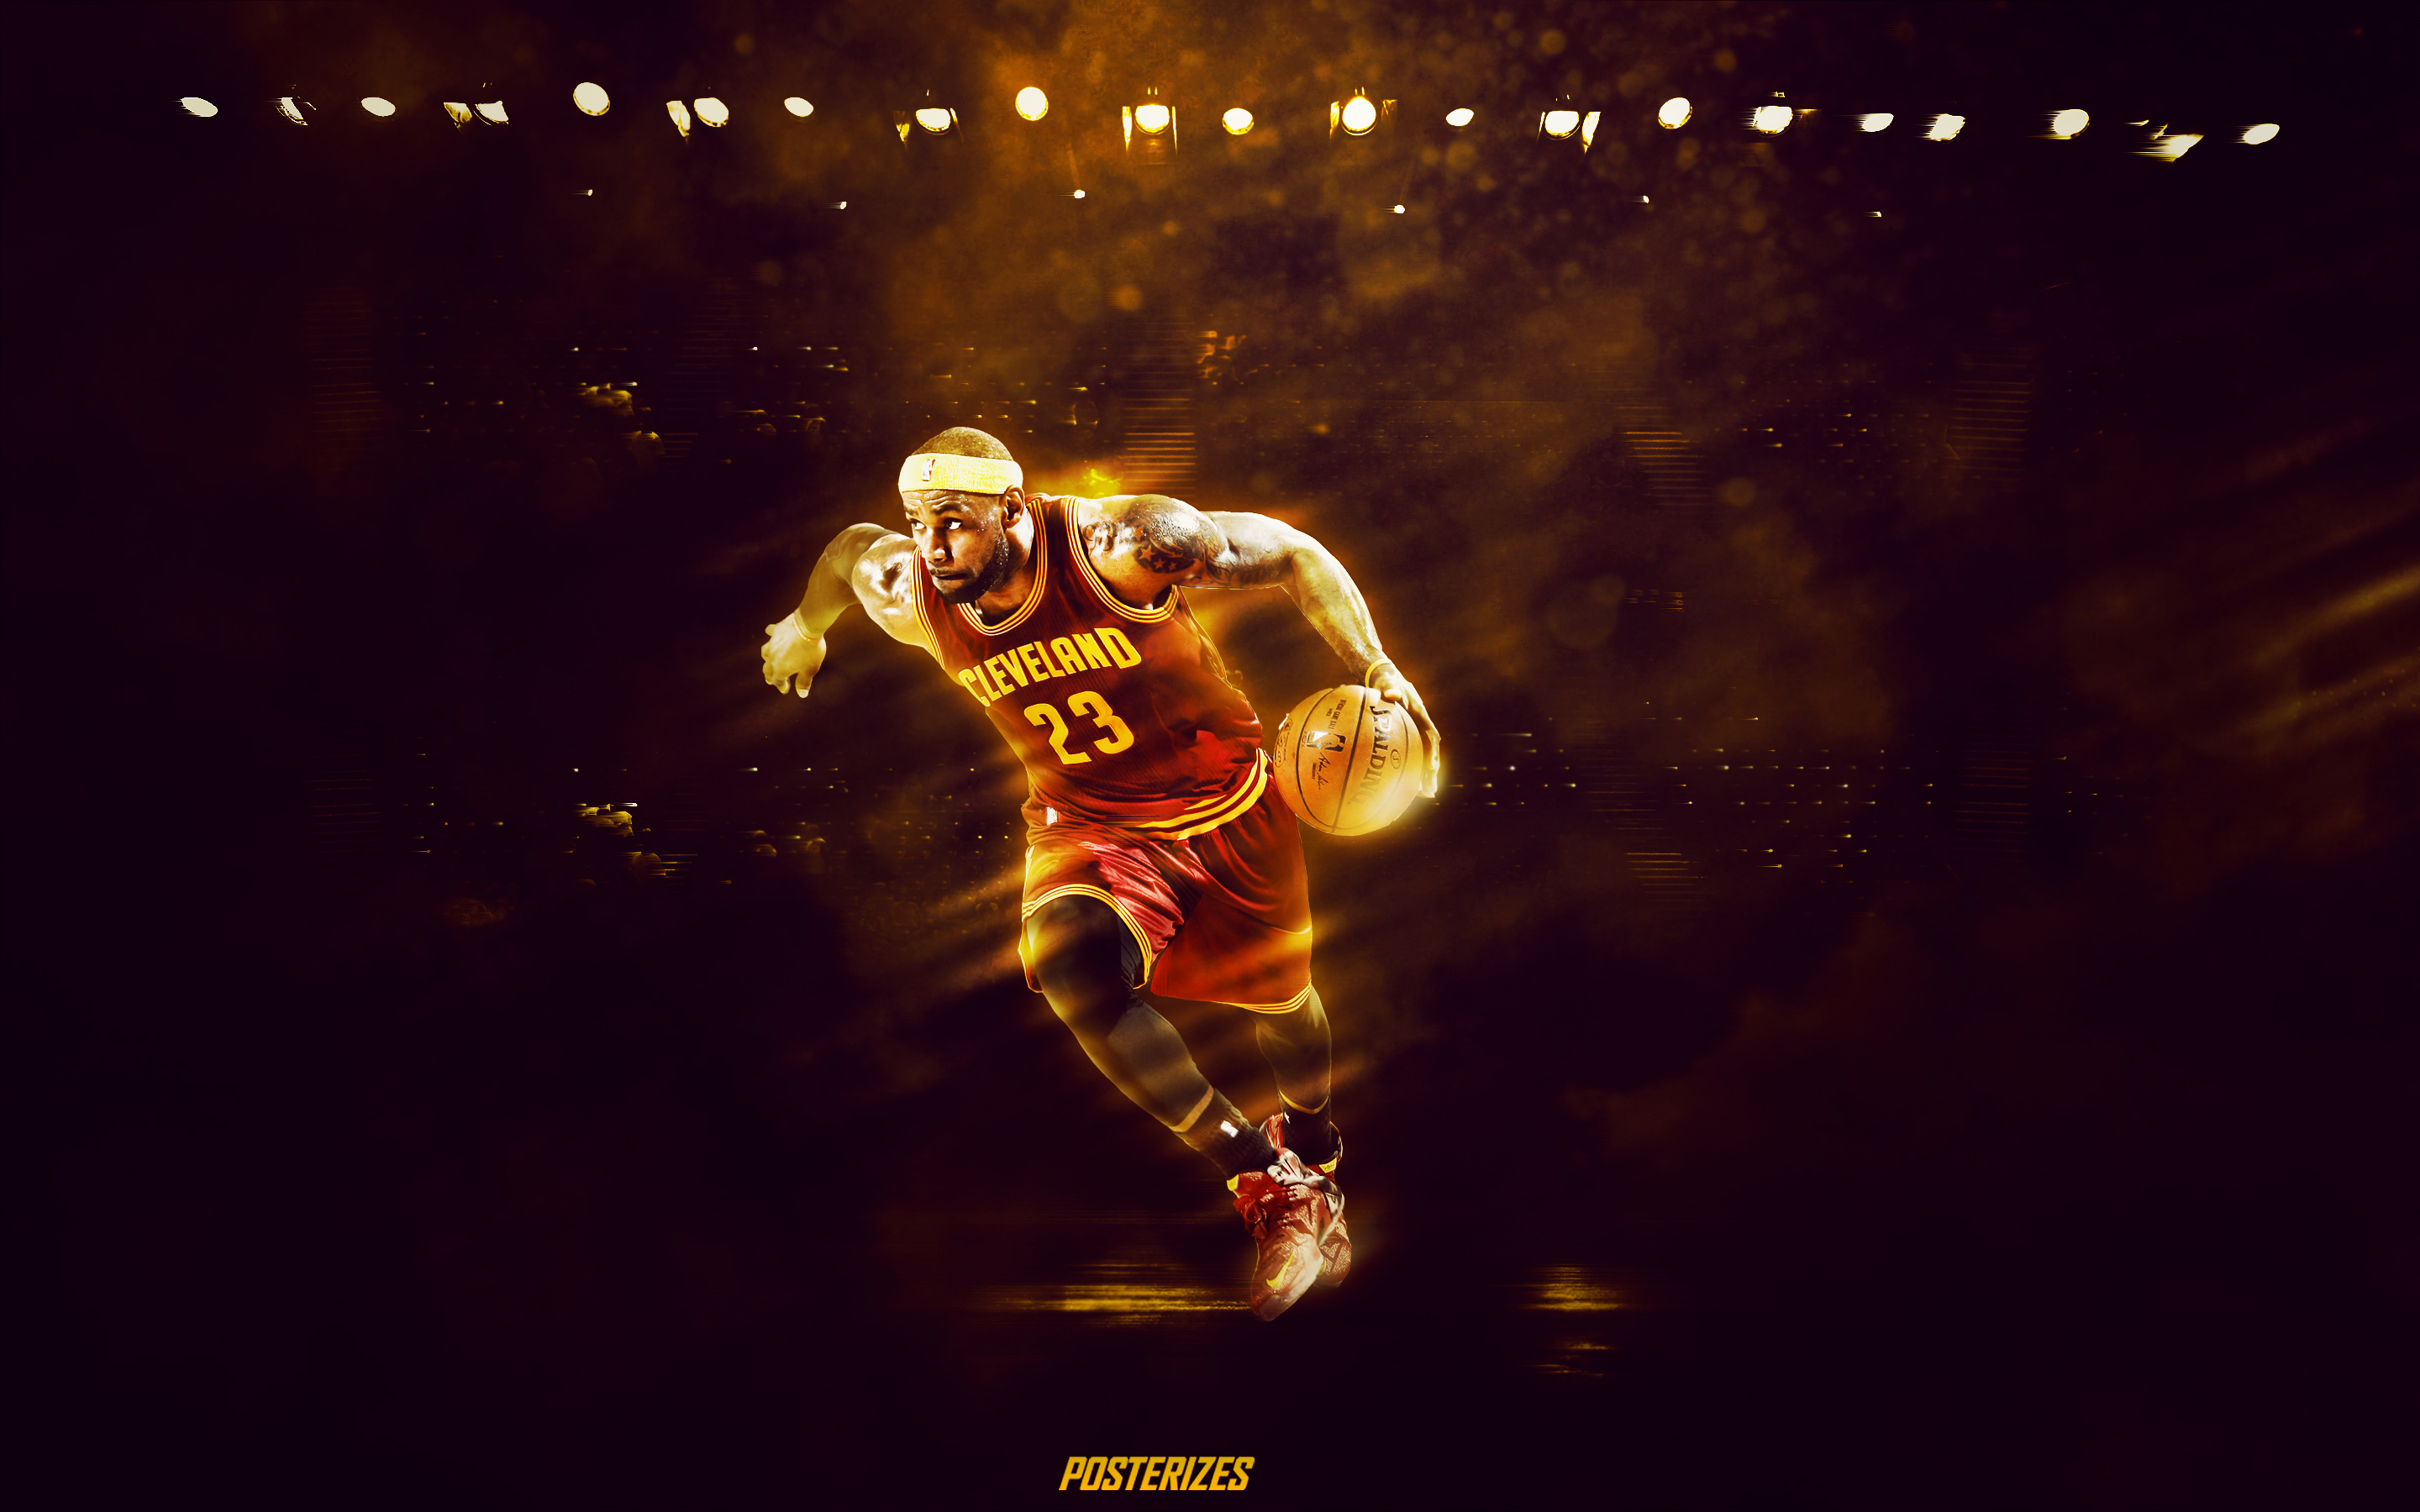 Lebron James Quotes Wallpaper Download Lebron James Posterizes Wallpaper Gallery